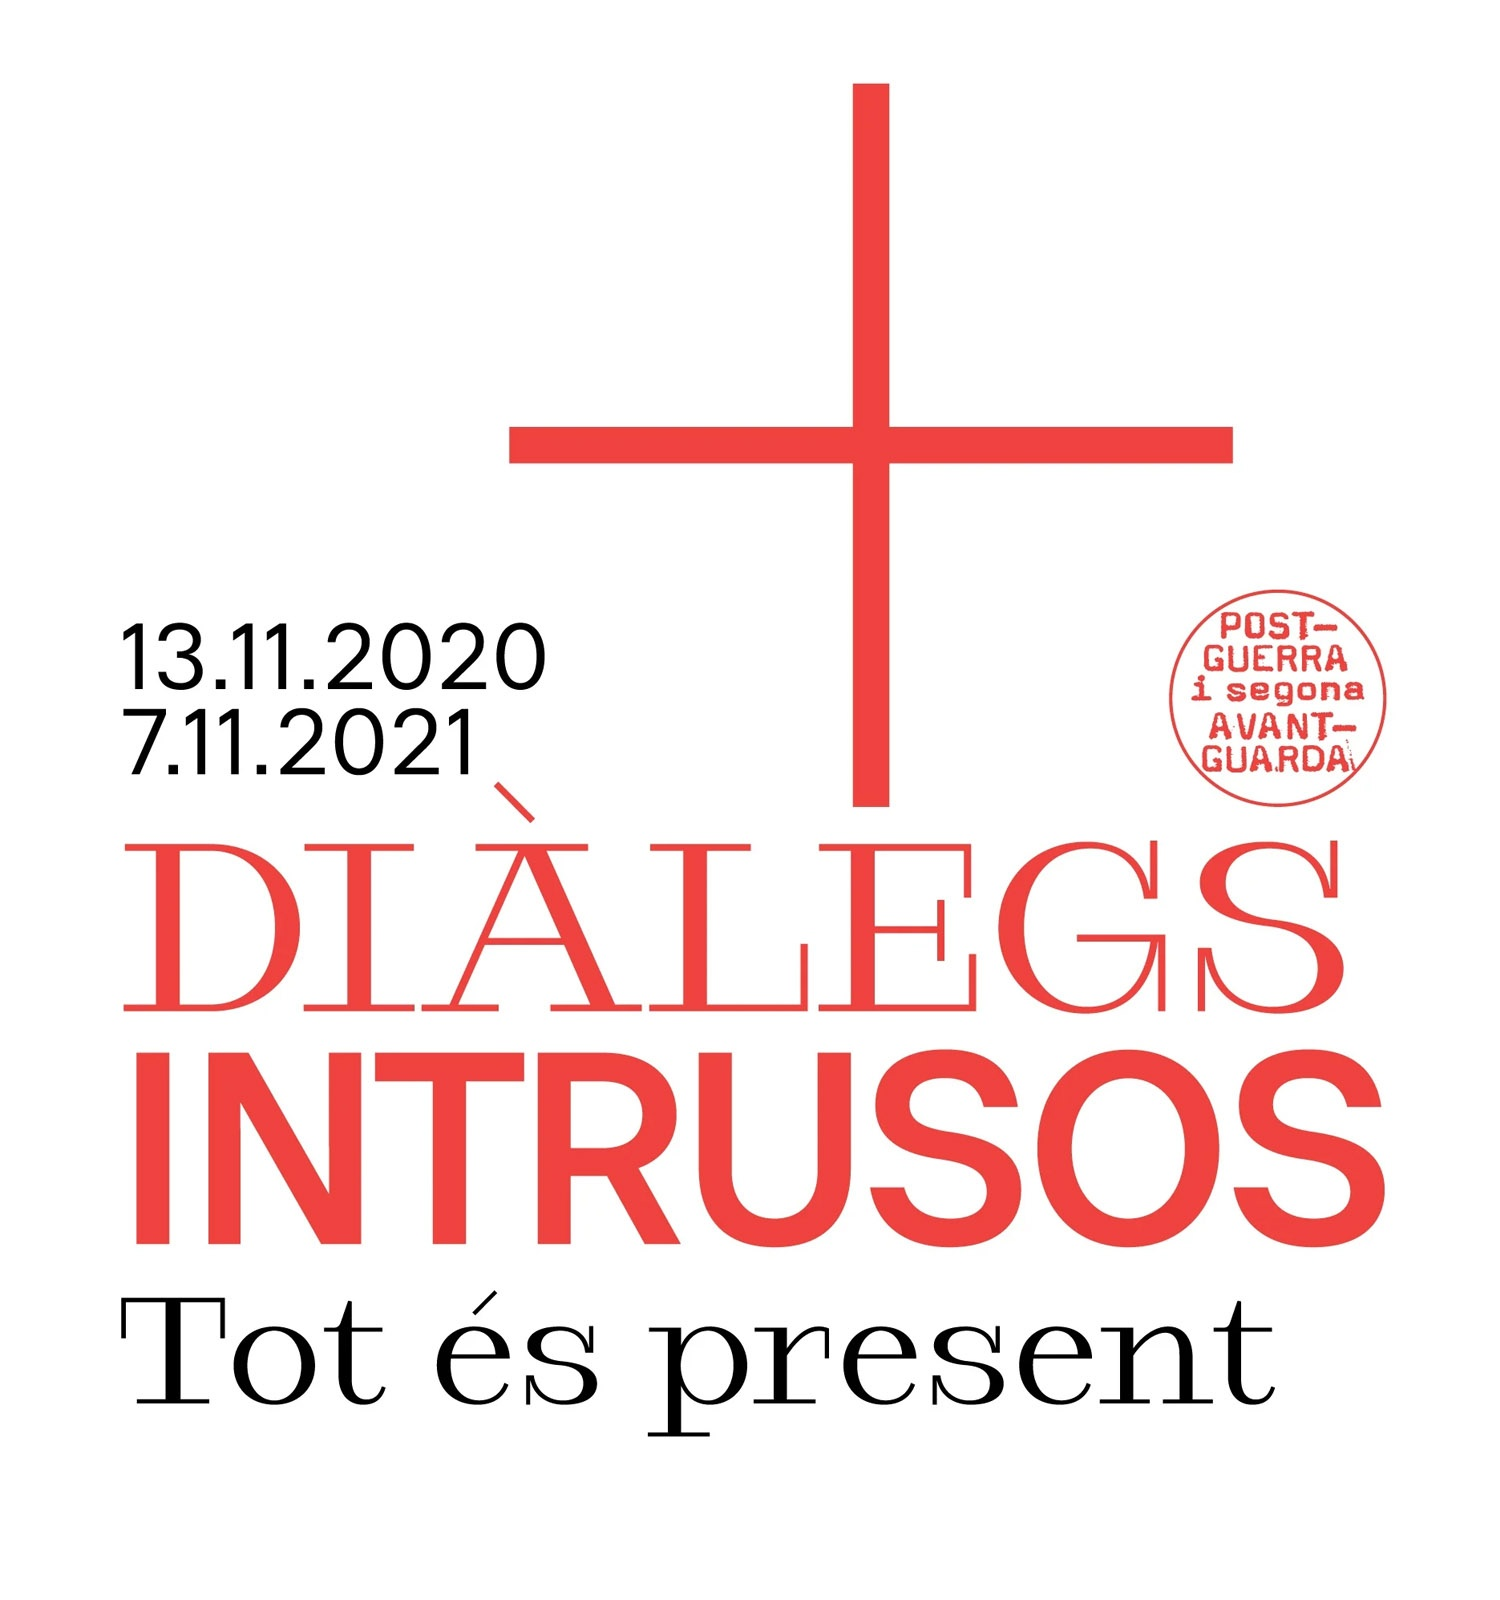 Diàlegs intrusos